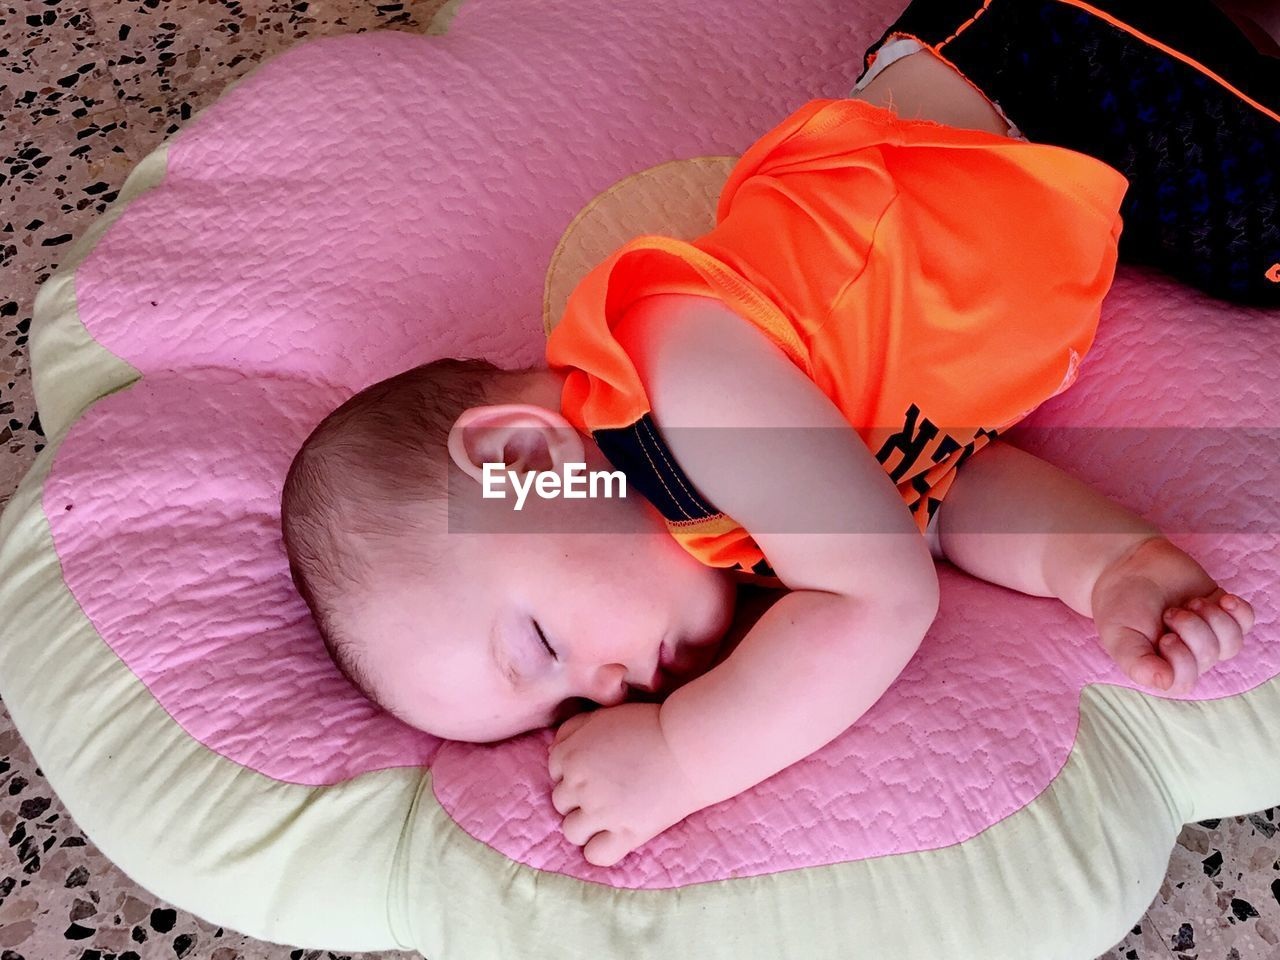 sleeping, real people, childhood, baby, lying down, bed, innocence, eyes closed, cute, one person, relaxation, babyhood, high angle view, lying on back, comfortable, fragility, indoors, new life, newborn, day, close-up, bedroom, people